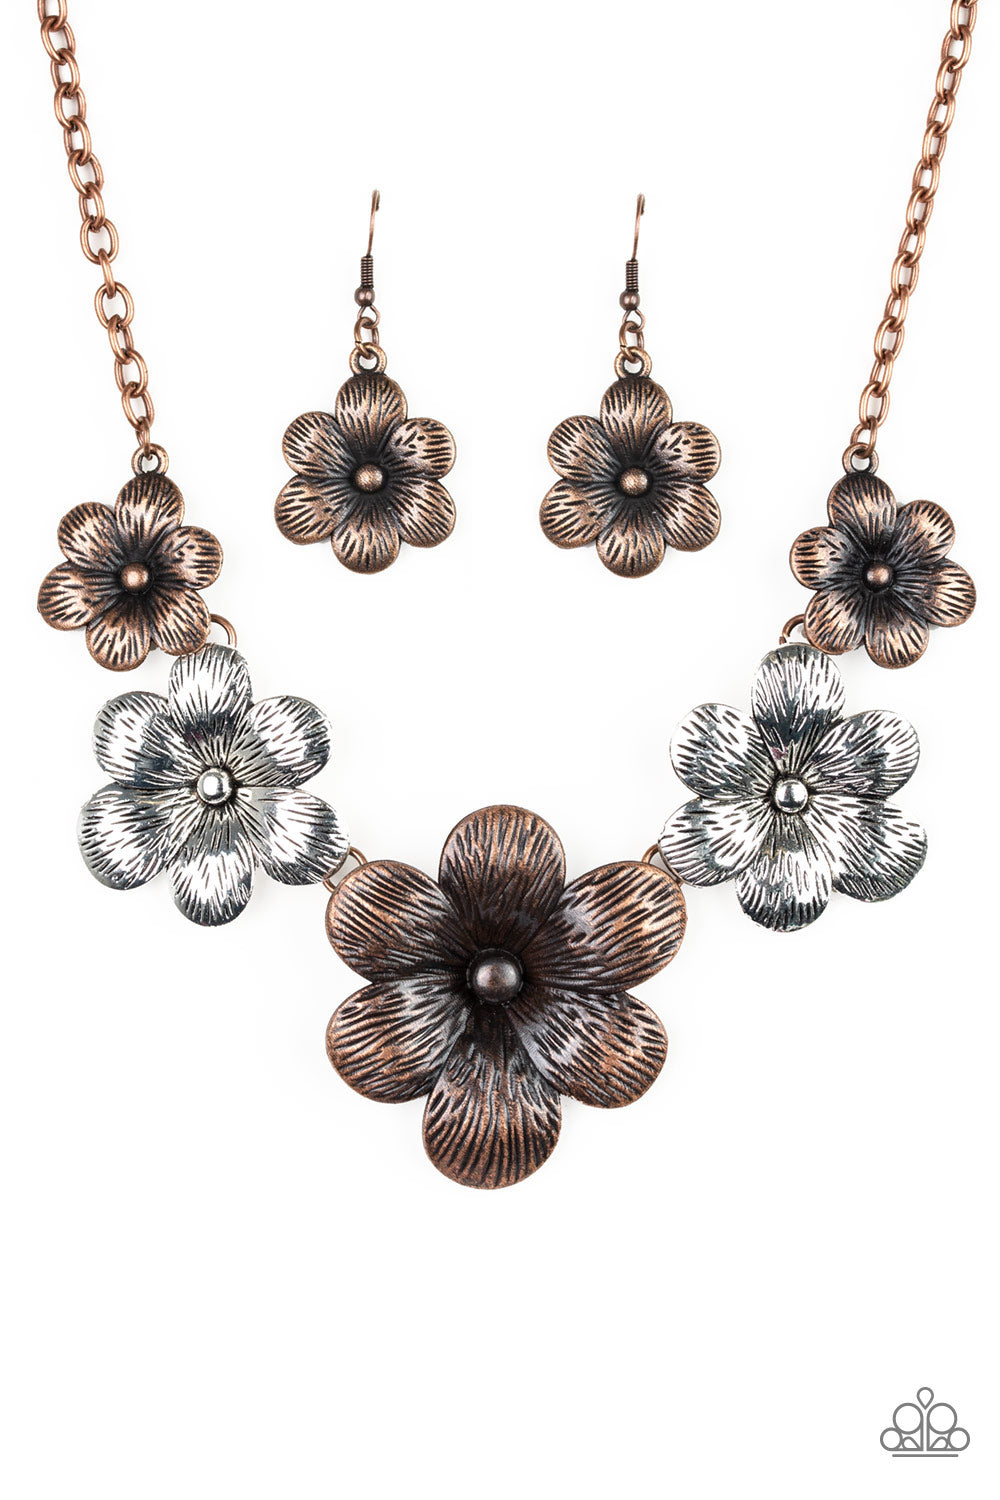 Paparazzi Accessories - Secret Garden - Multicolor Necklace Set - JMJ Jewelry Collection